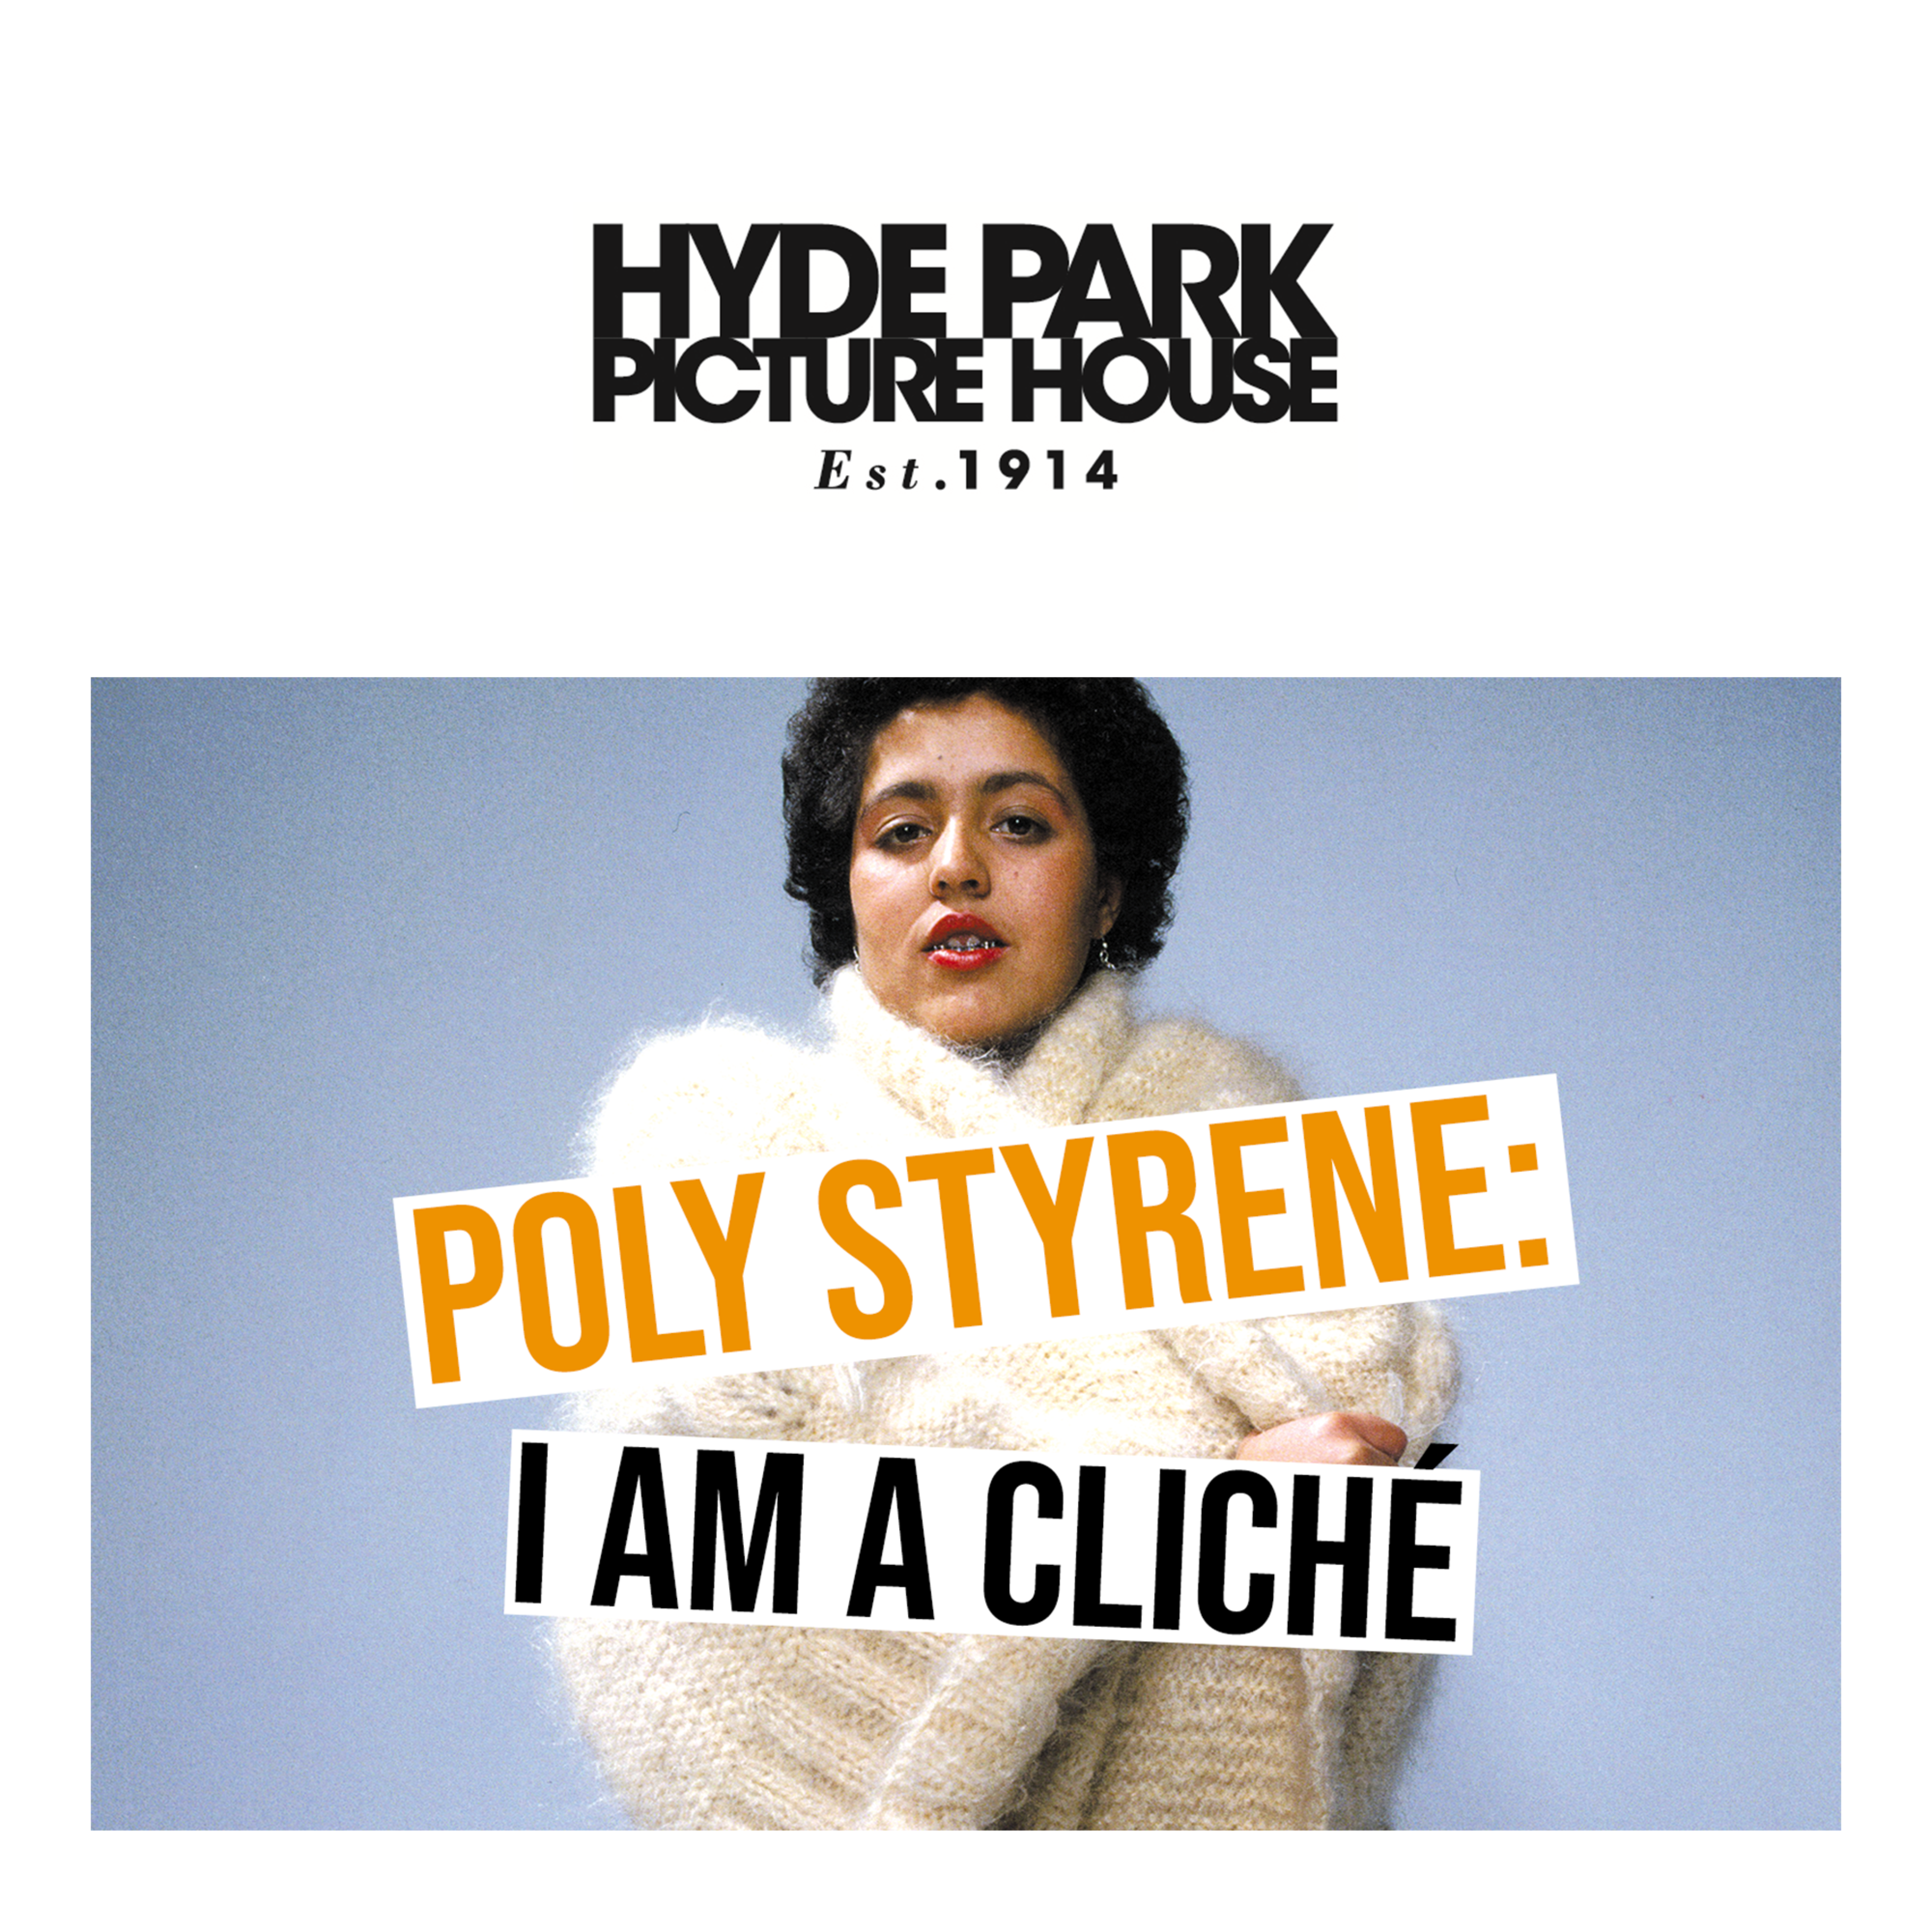 Poly Styrene: I Am a Cliché at Hyde Park Picture House